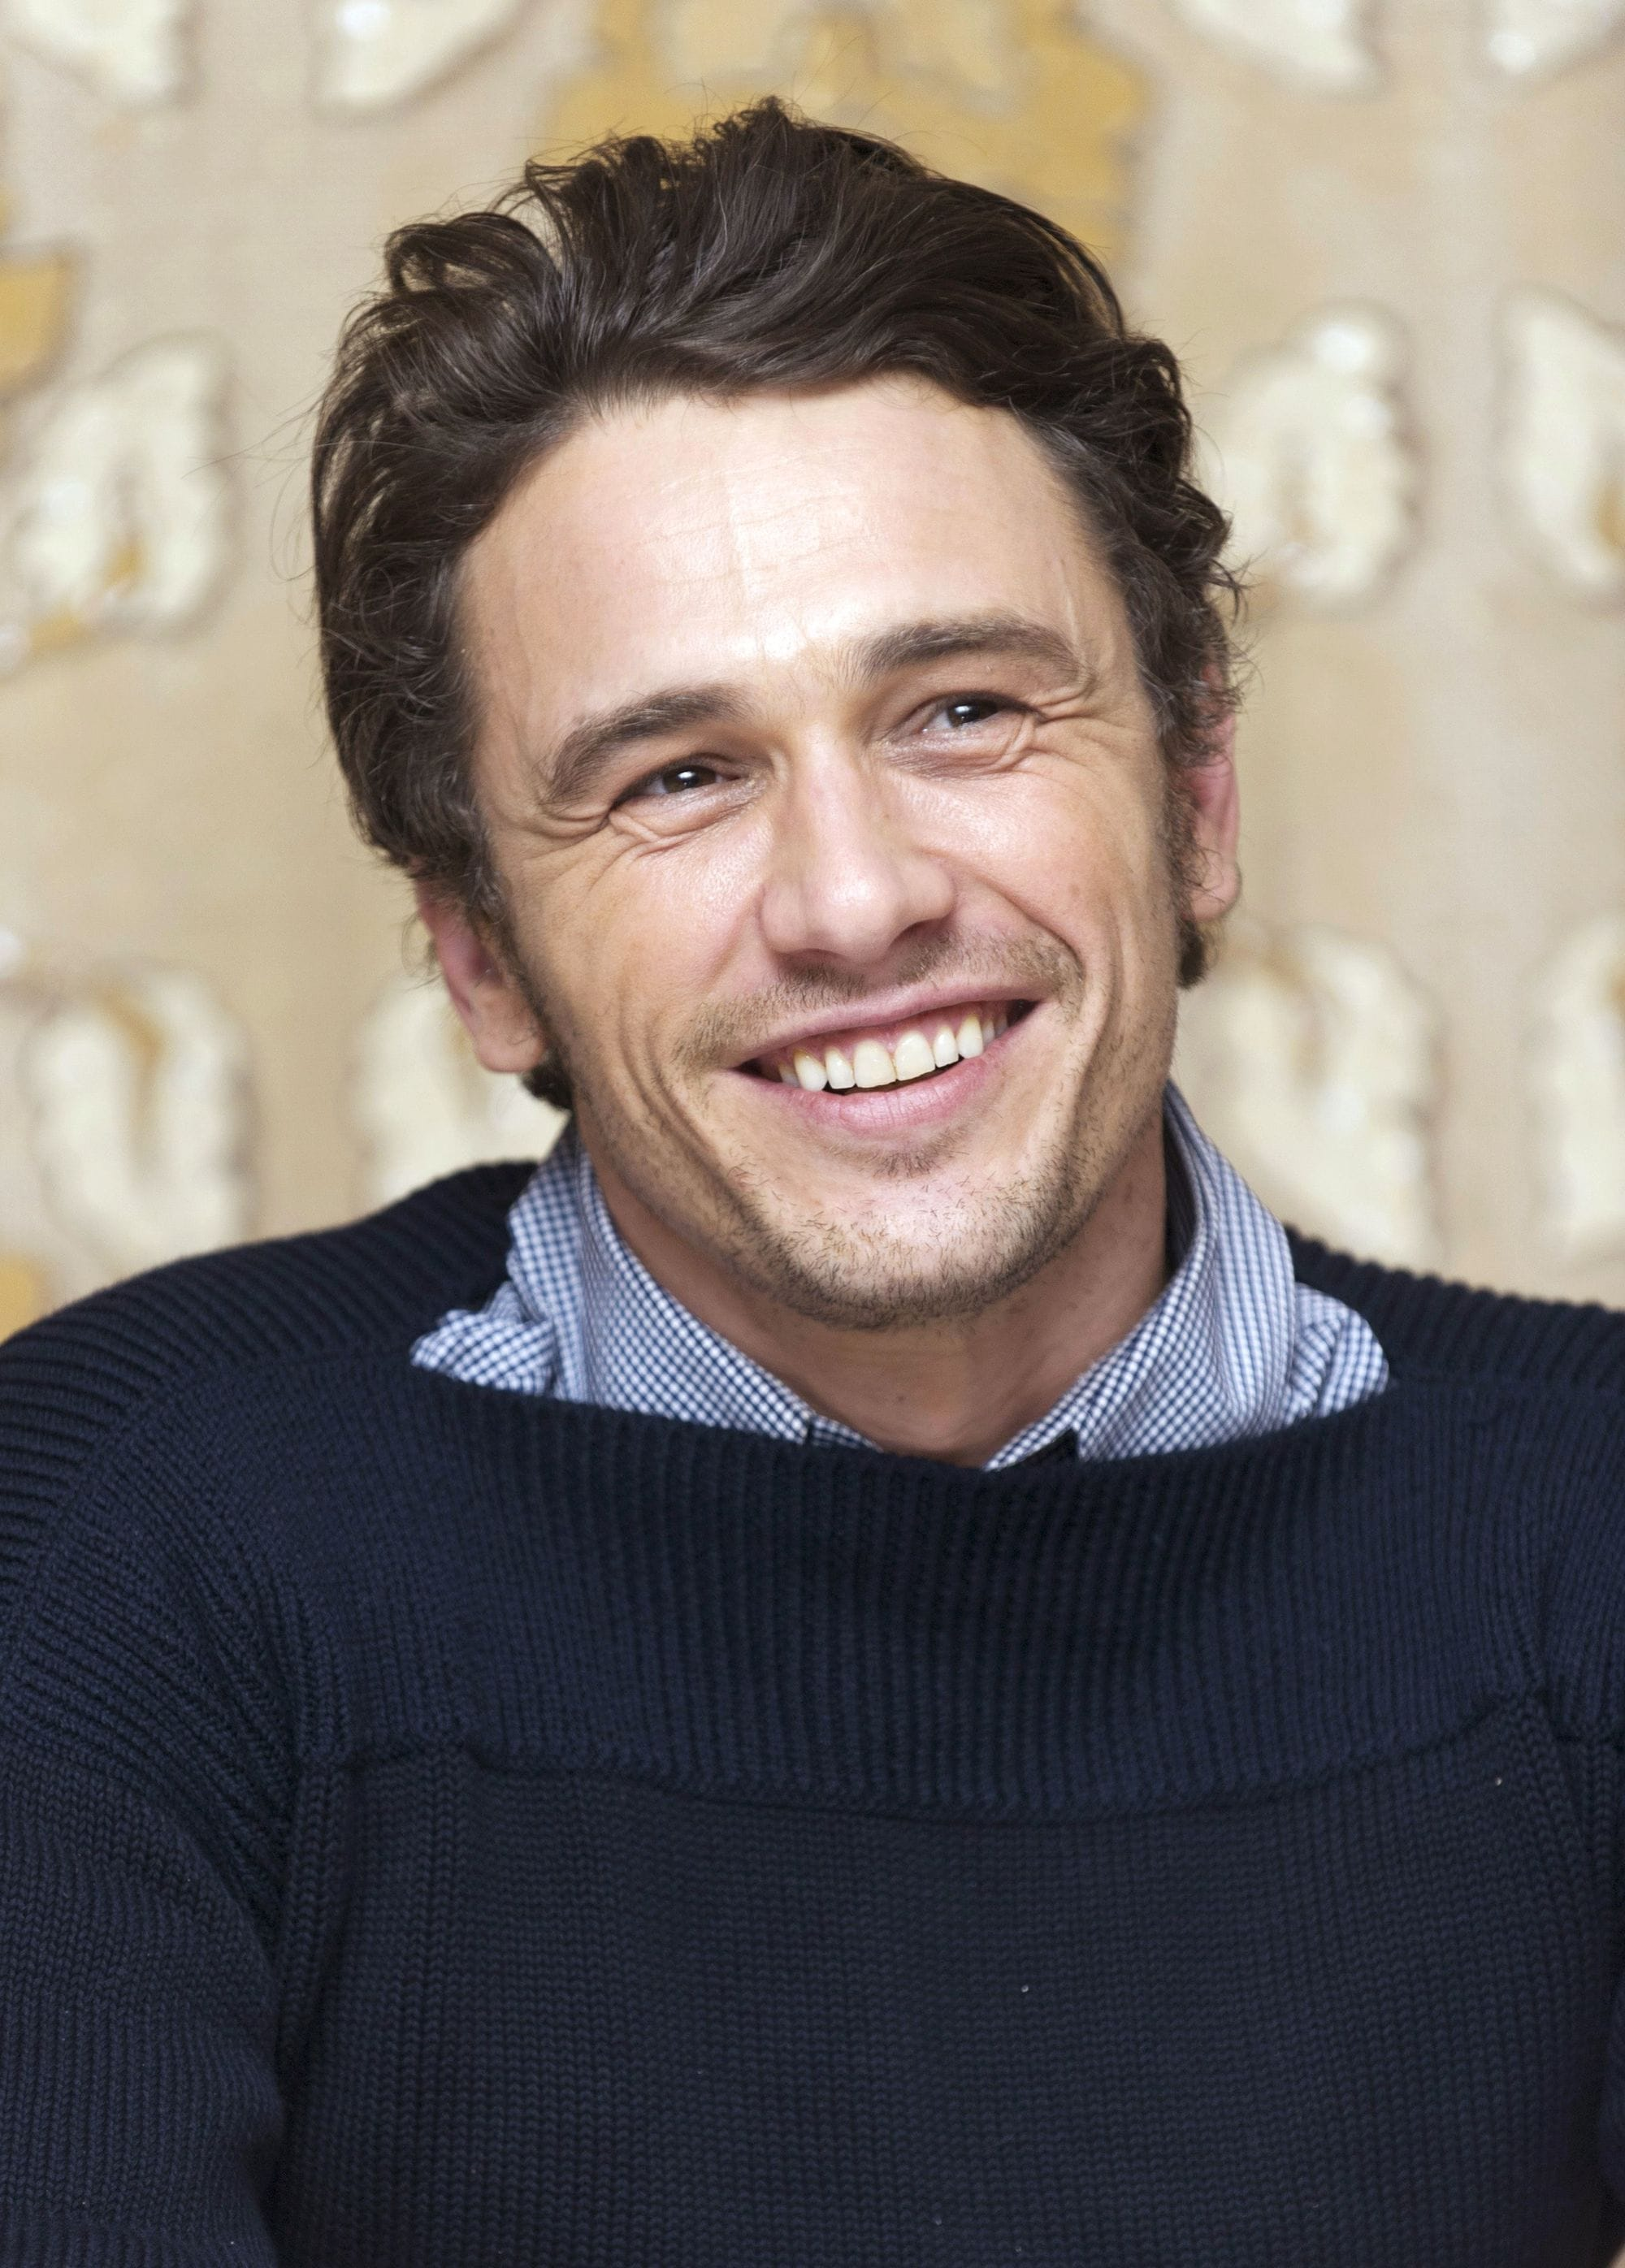 james franco thick wavy brown hair pushed back smiling